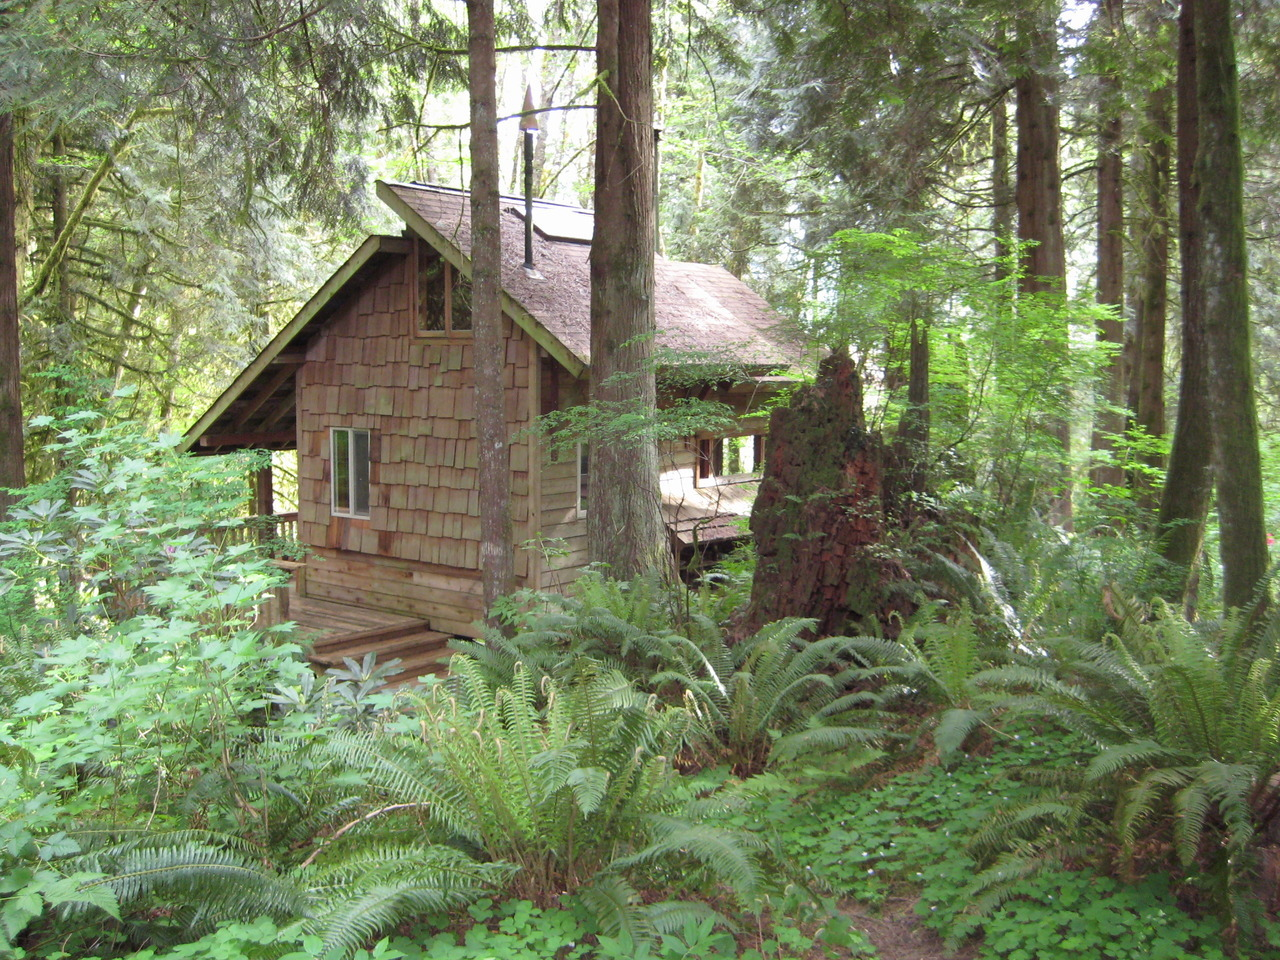 cabinporn:  Handbuilt cabin in Washington State. Writes owner Bryan Graham:  Built in 1978 over a nine month period without power tools while living in a tent next to the site. About a week after moving into the cabin, during the night a large alder fell through the middle of the tent. This was home for several years.